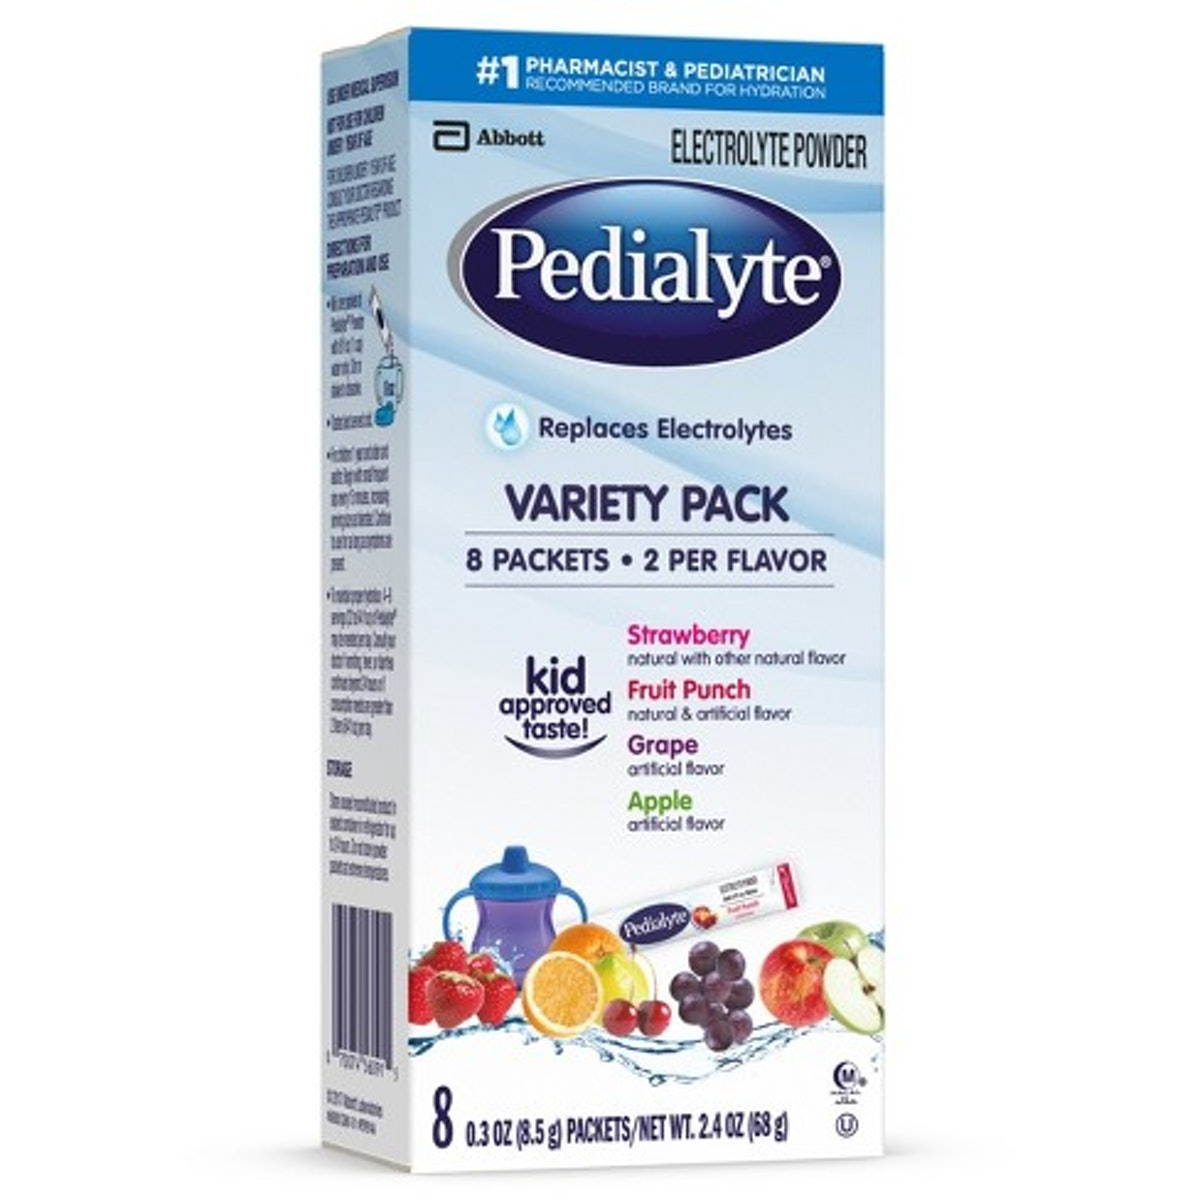 Pedialyte Oral Electrolyte Solution Powder, 8 Pack